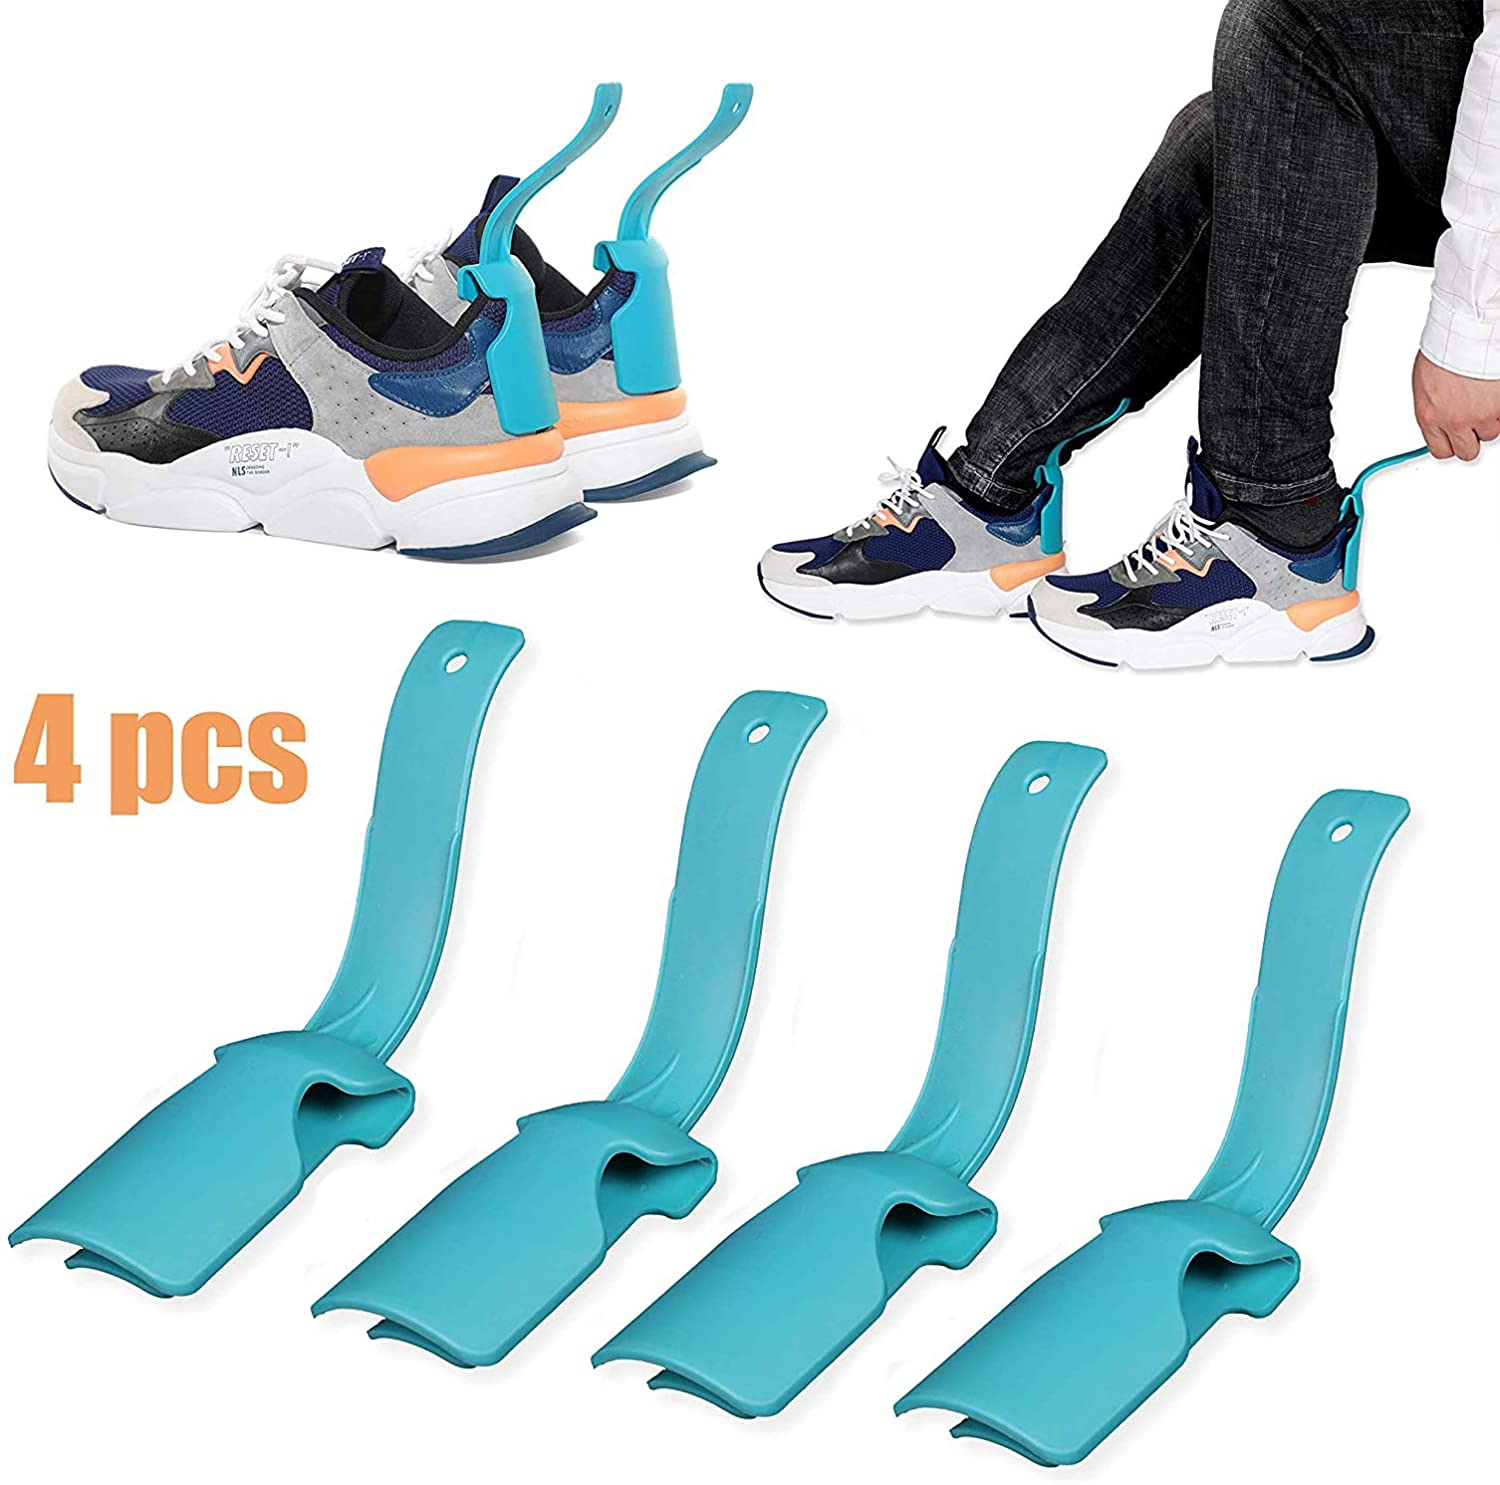 Lazy Shoe Lifting Helper (4 pcs)